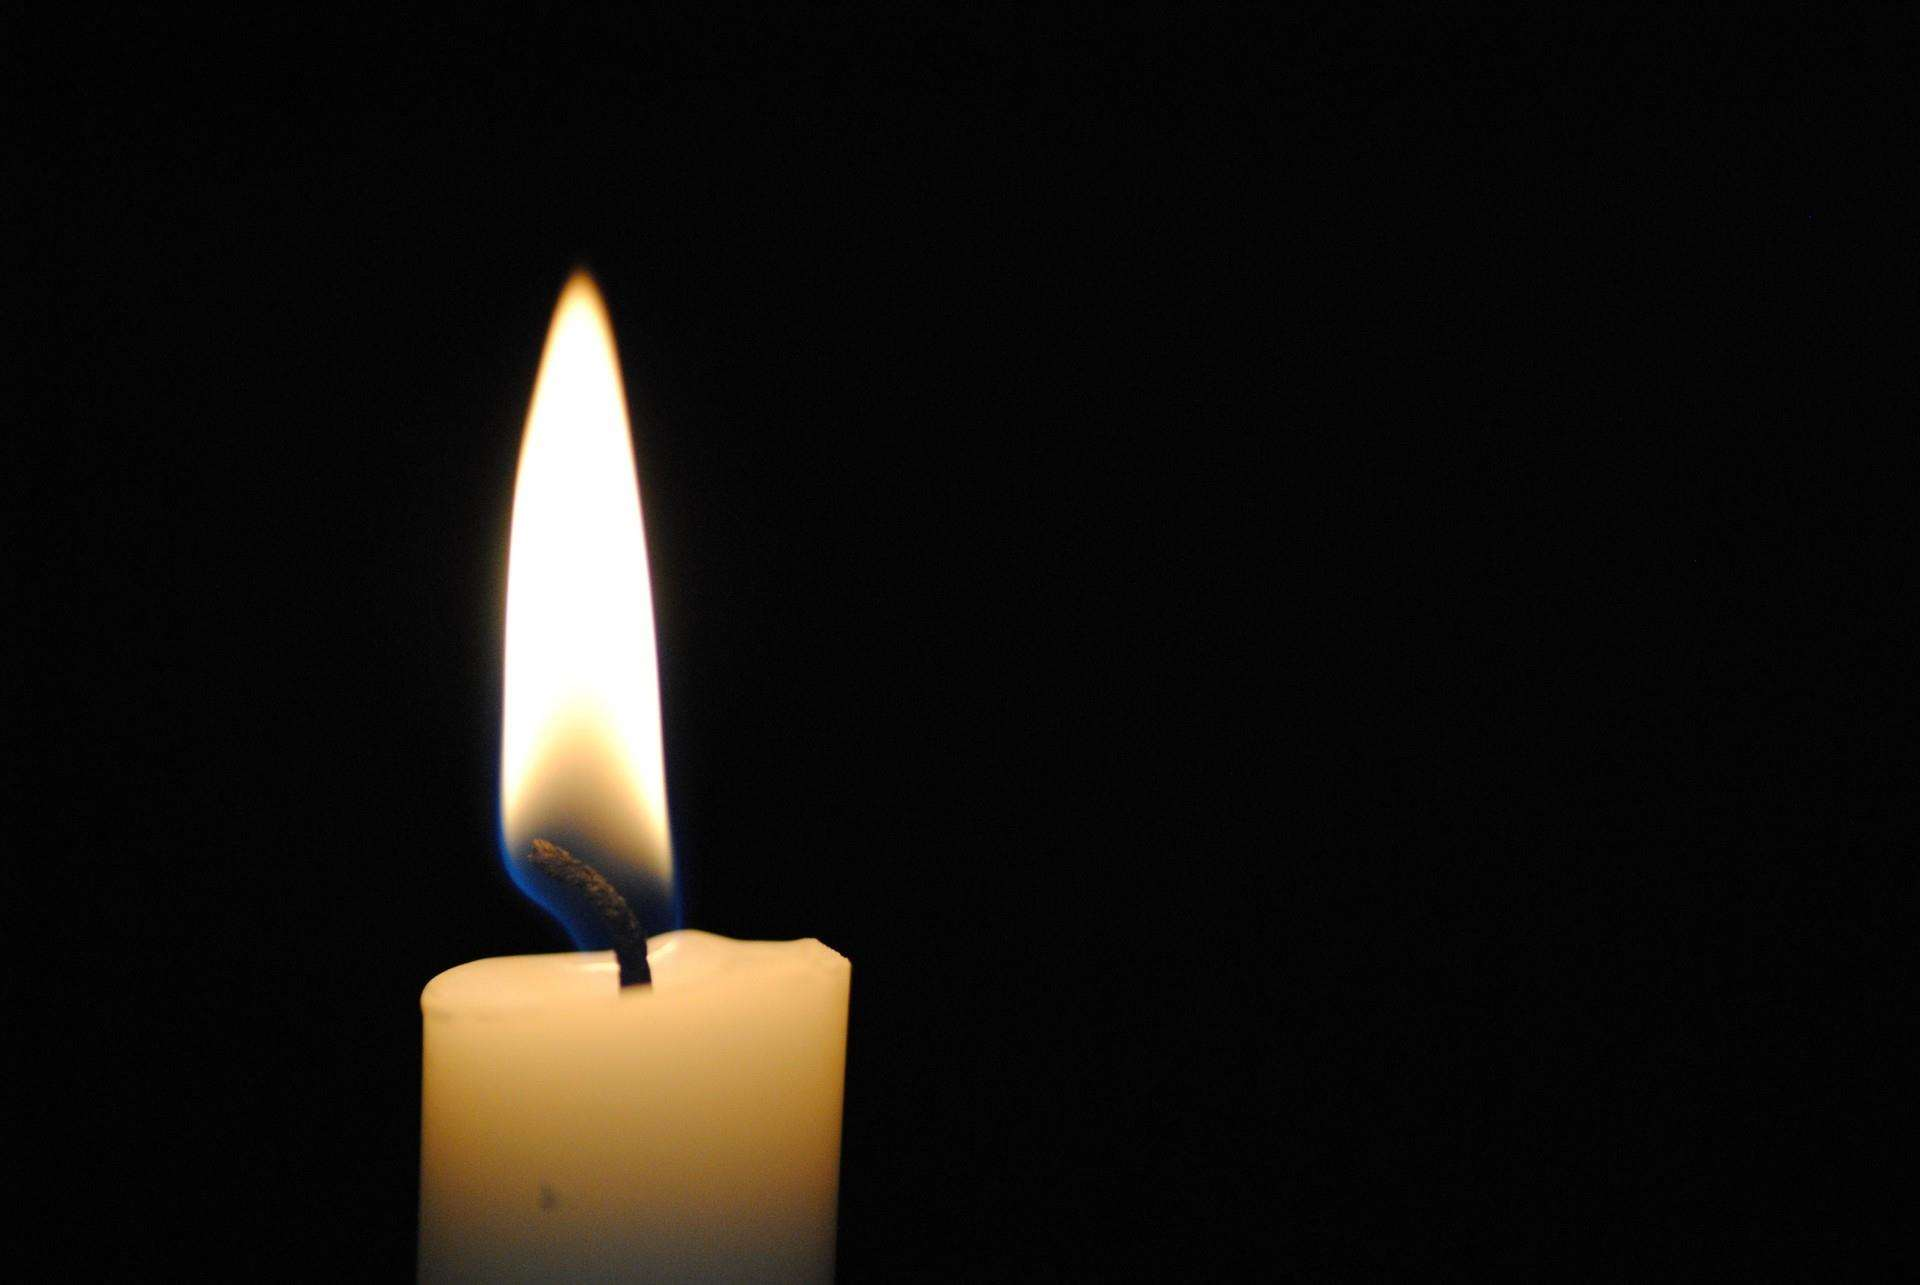 The power cut is affecting homes on Romney Marsh